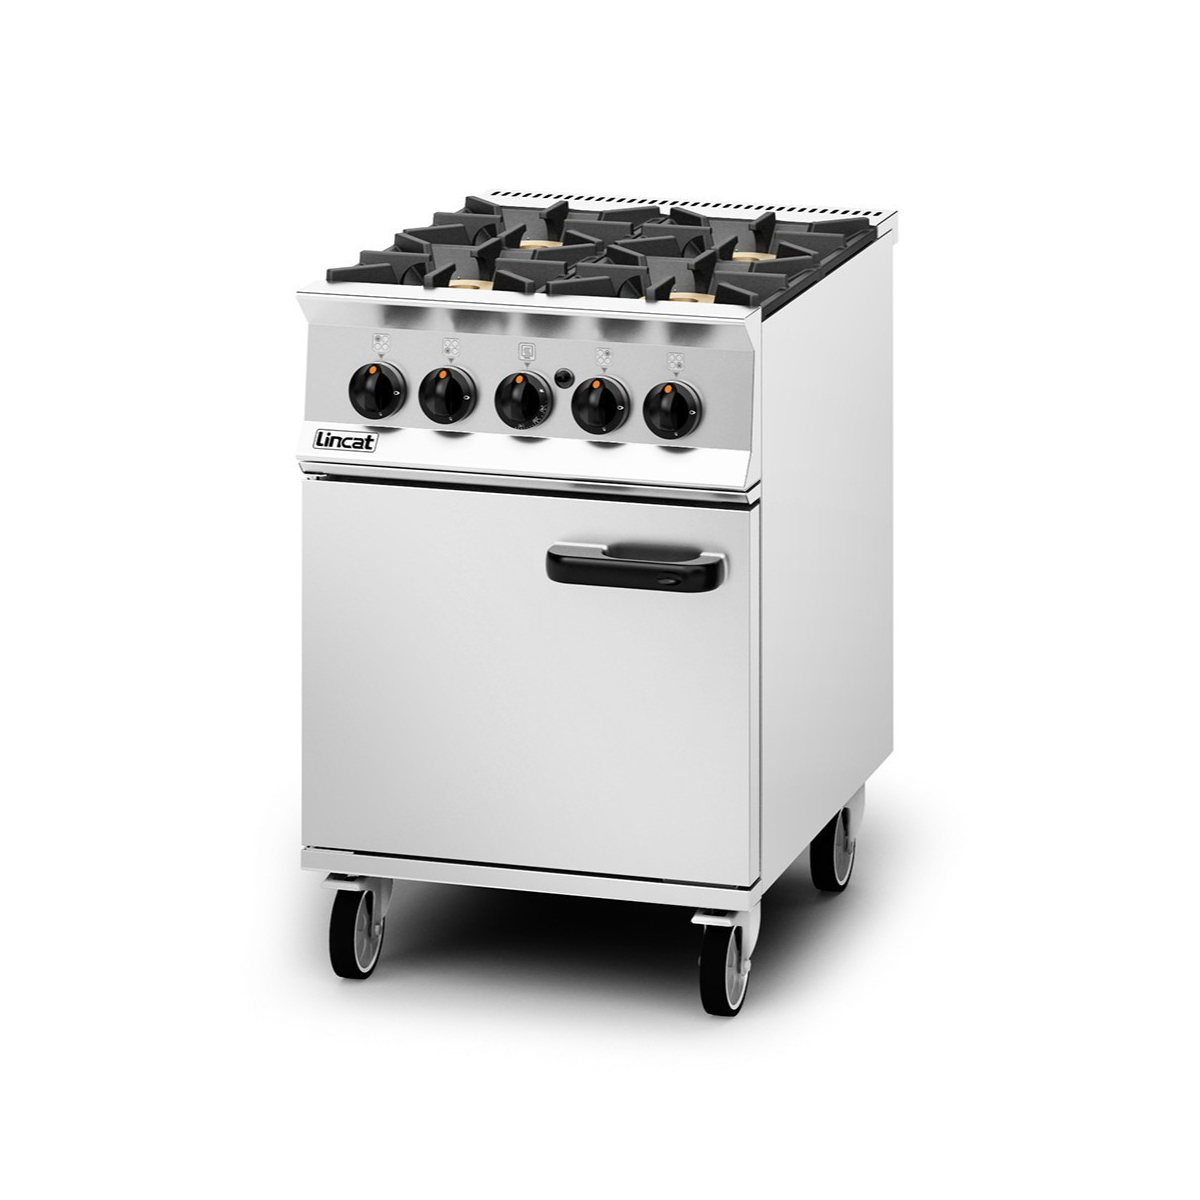 Lincat Opus 800 – 4 Burner Gas Oven Range Model: OG8001/N (Natural Gas)